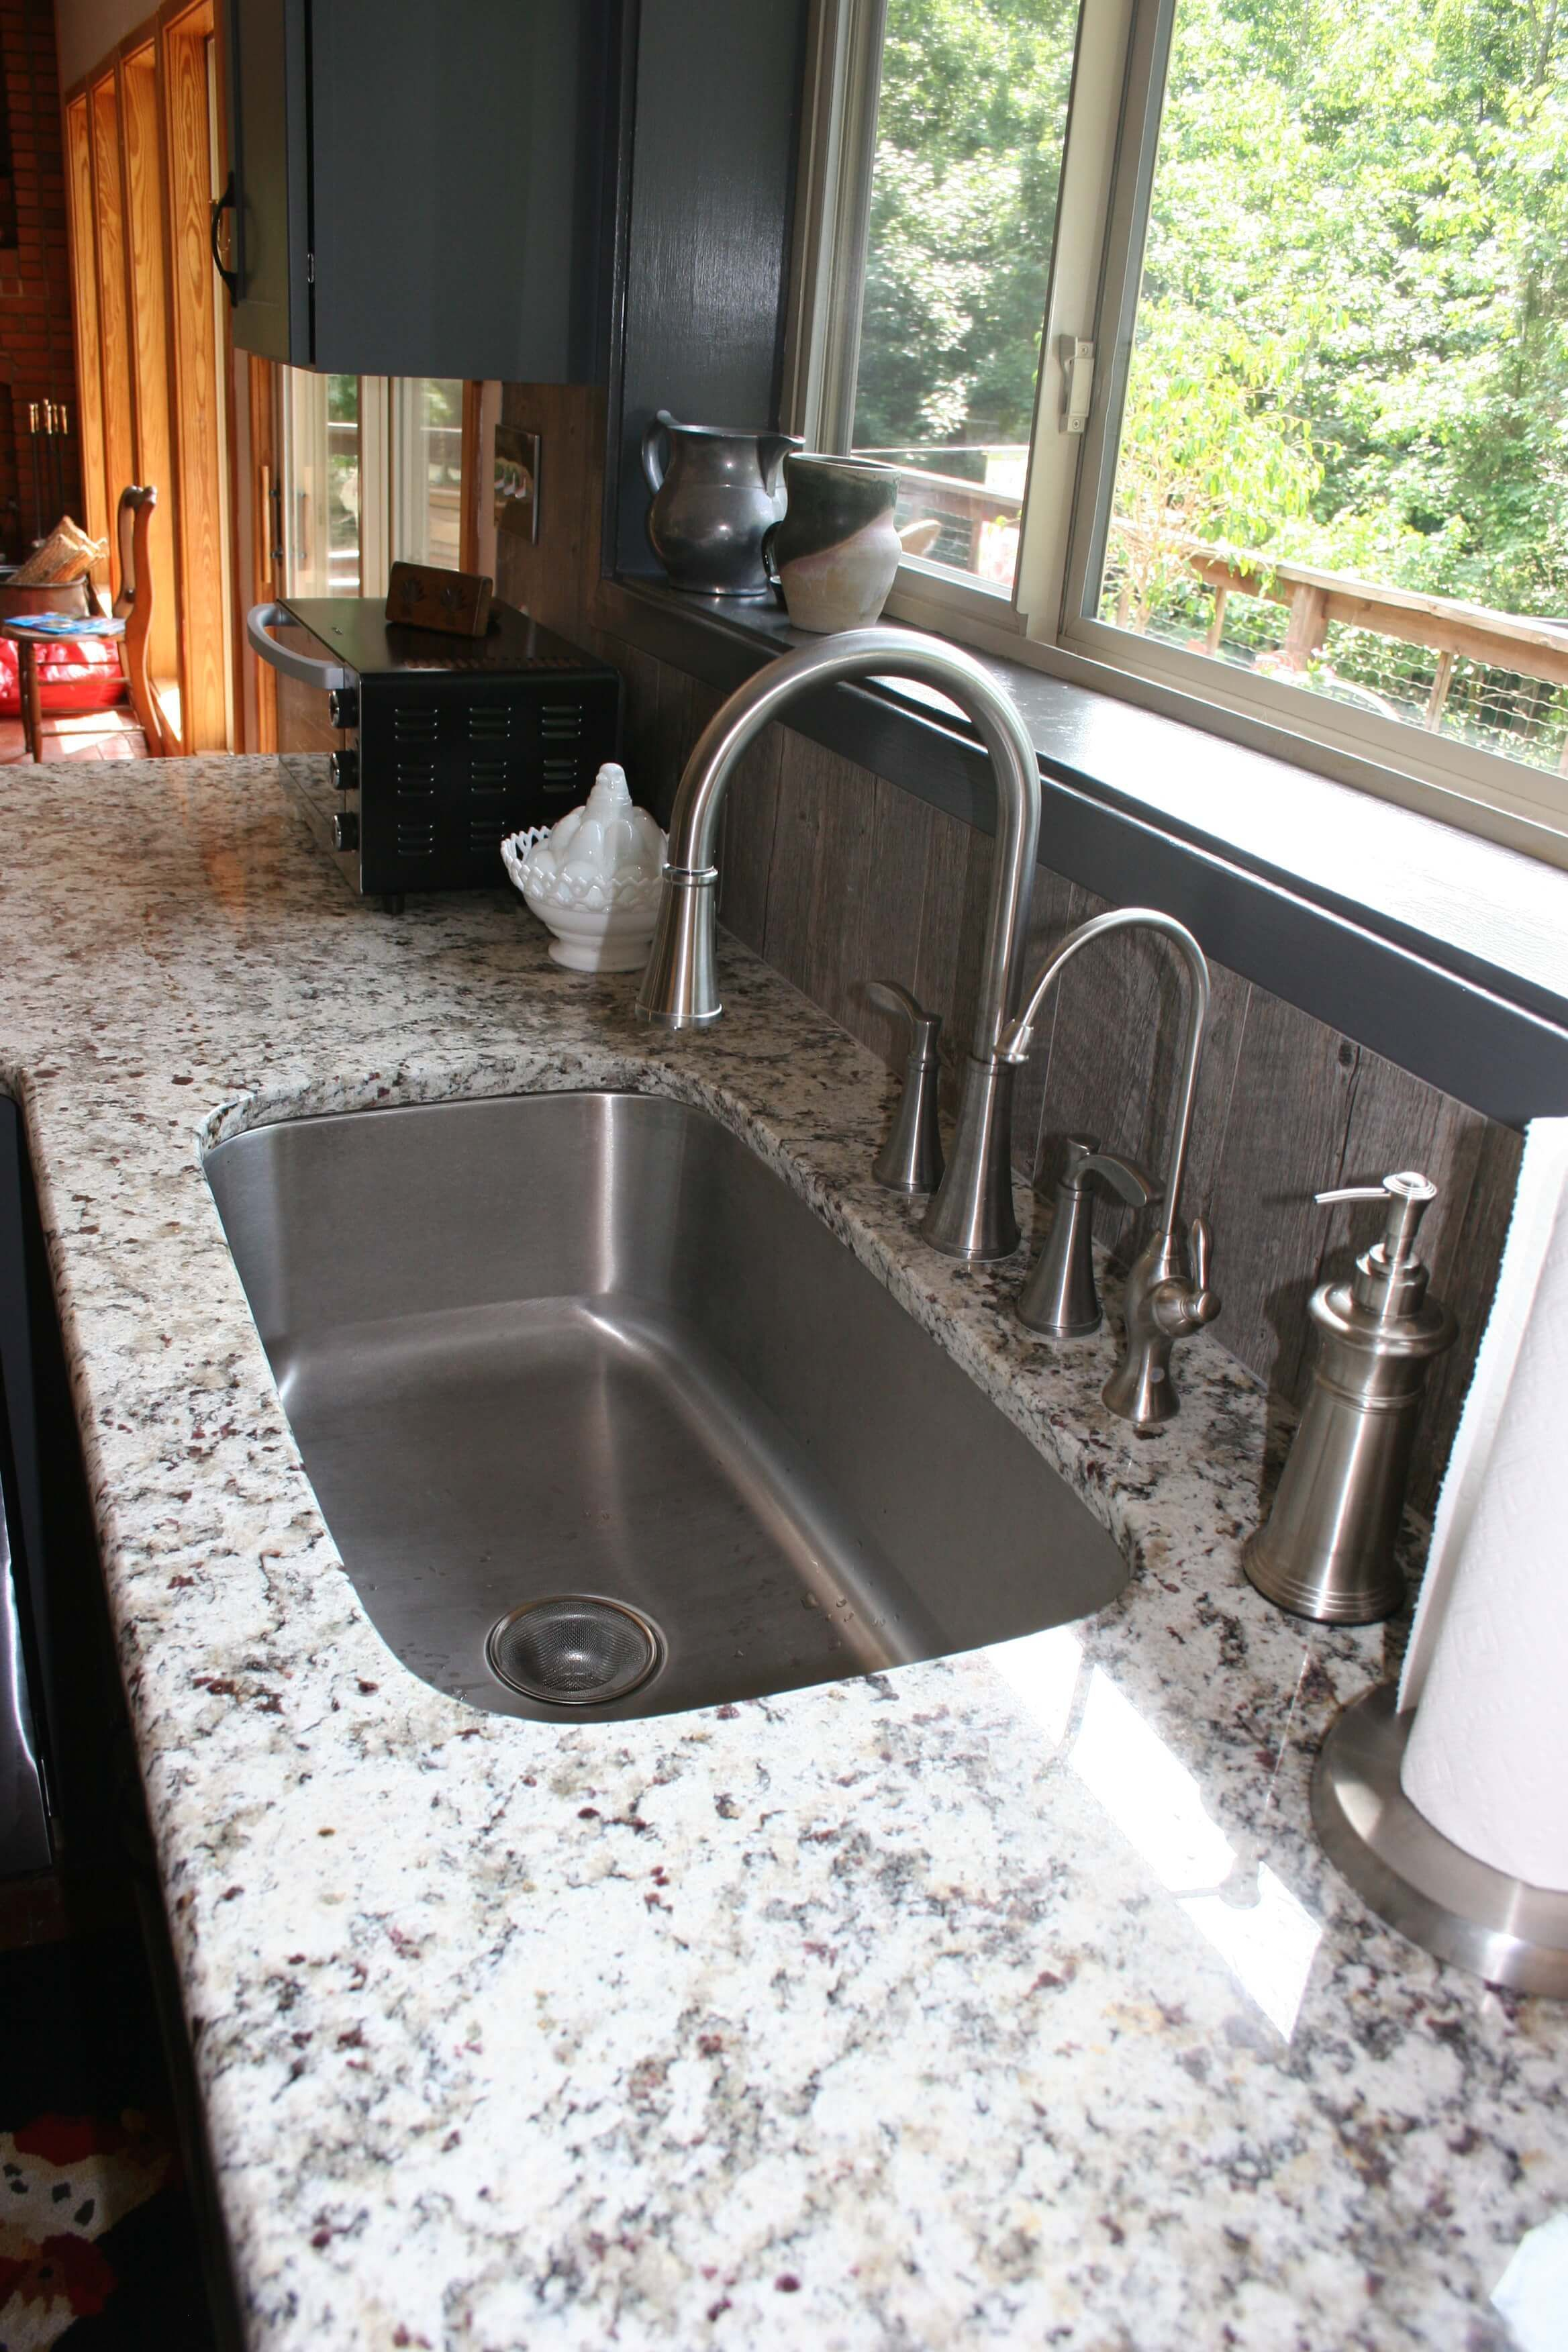 Kitchen Countertop Outlet Height Kitchencountertops Kitchencountertops Granite Countertops Kitchen White Granite Slabs White Granite Countertops